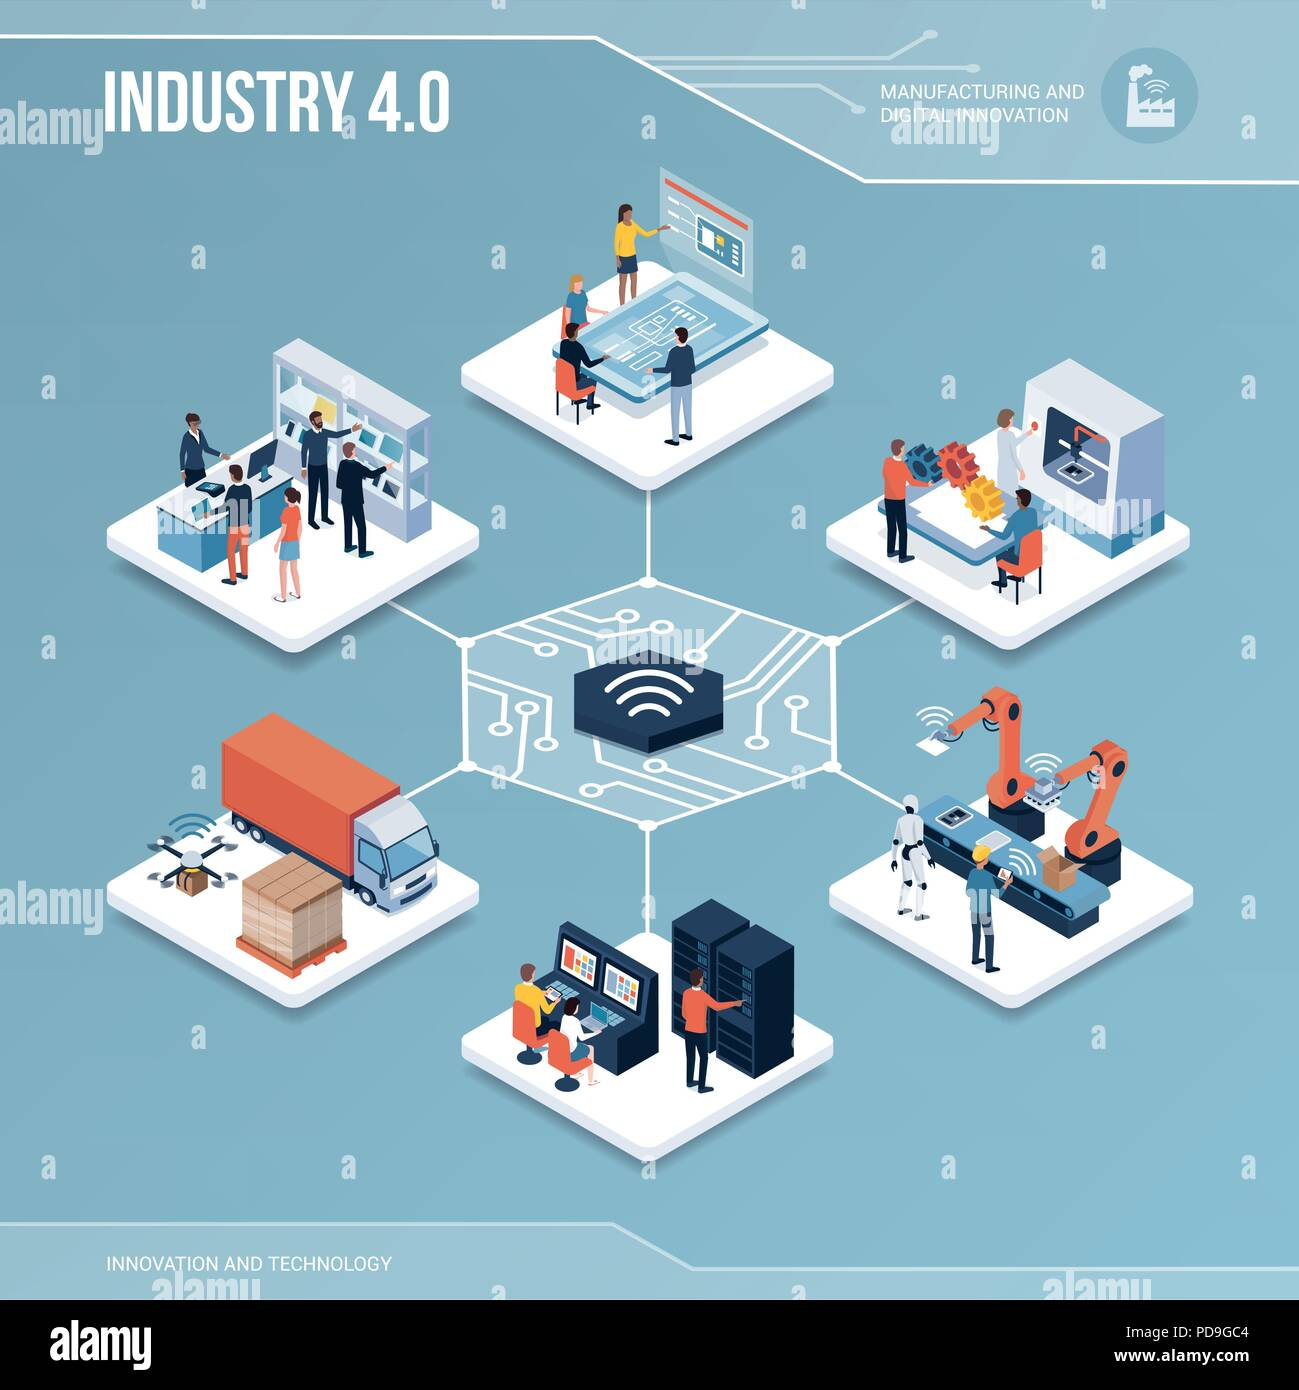 Digital core: industry 4.0, production and automation isometric infographic with people - Stock Vector